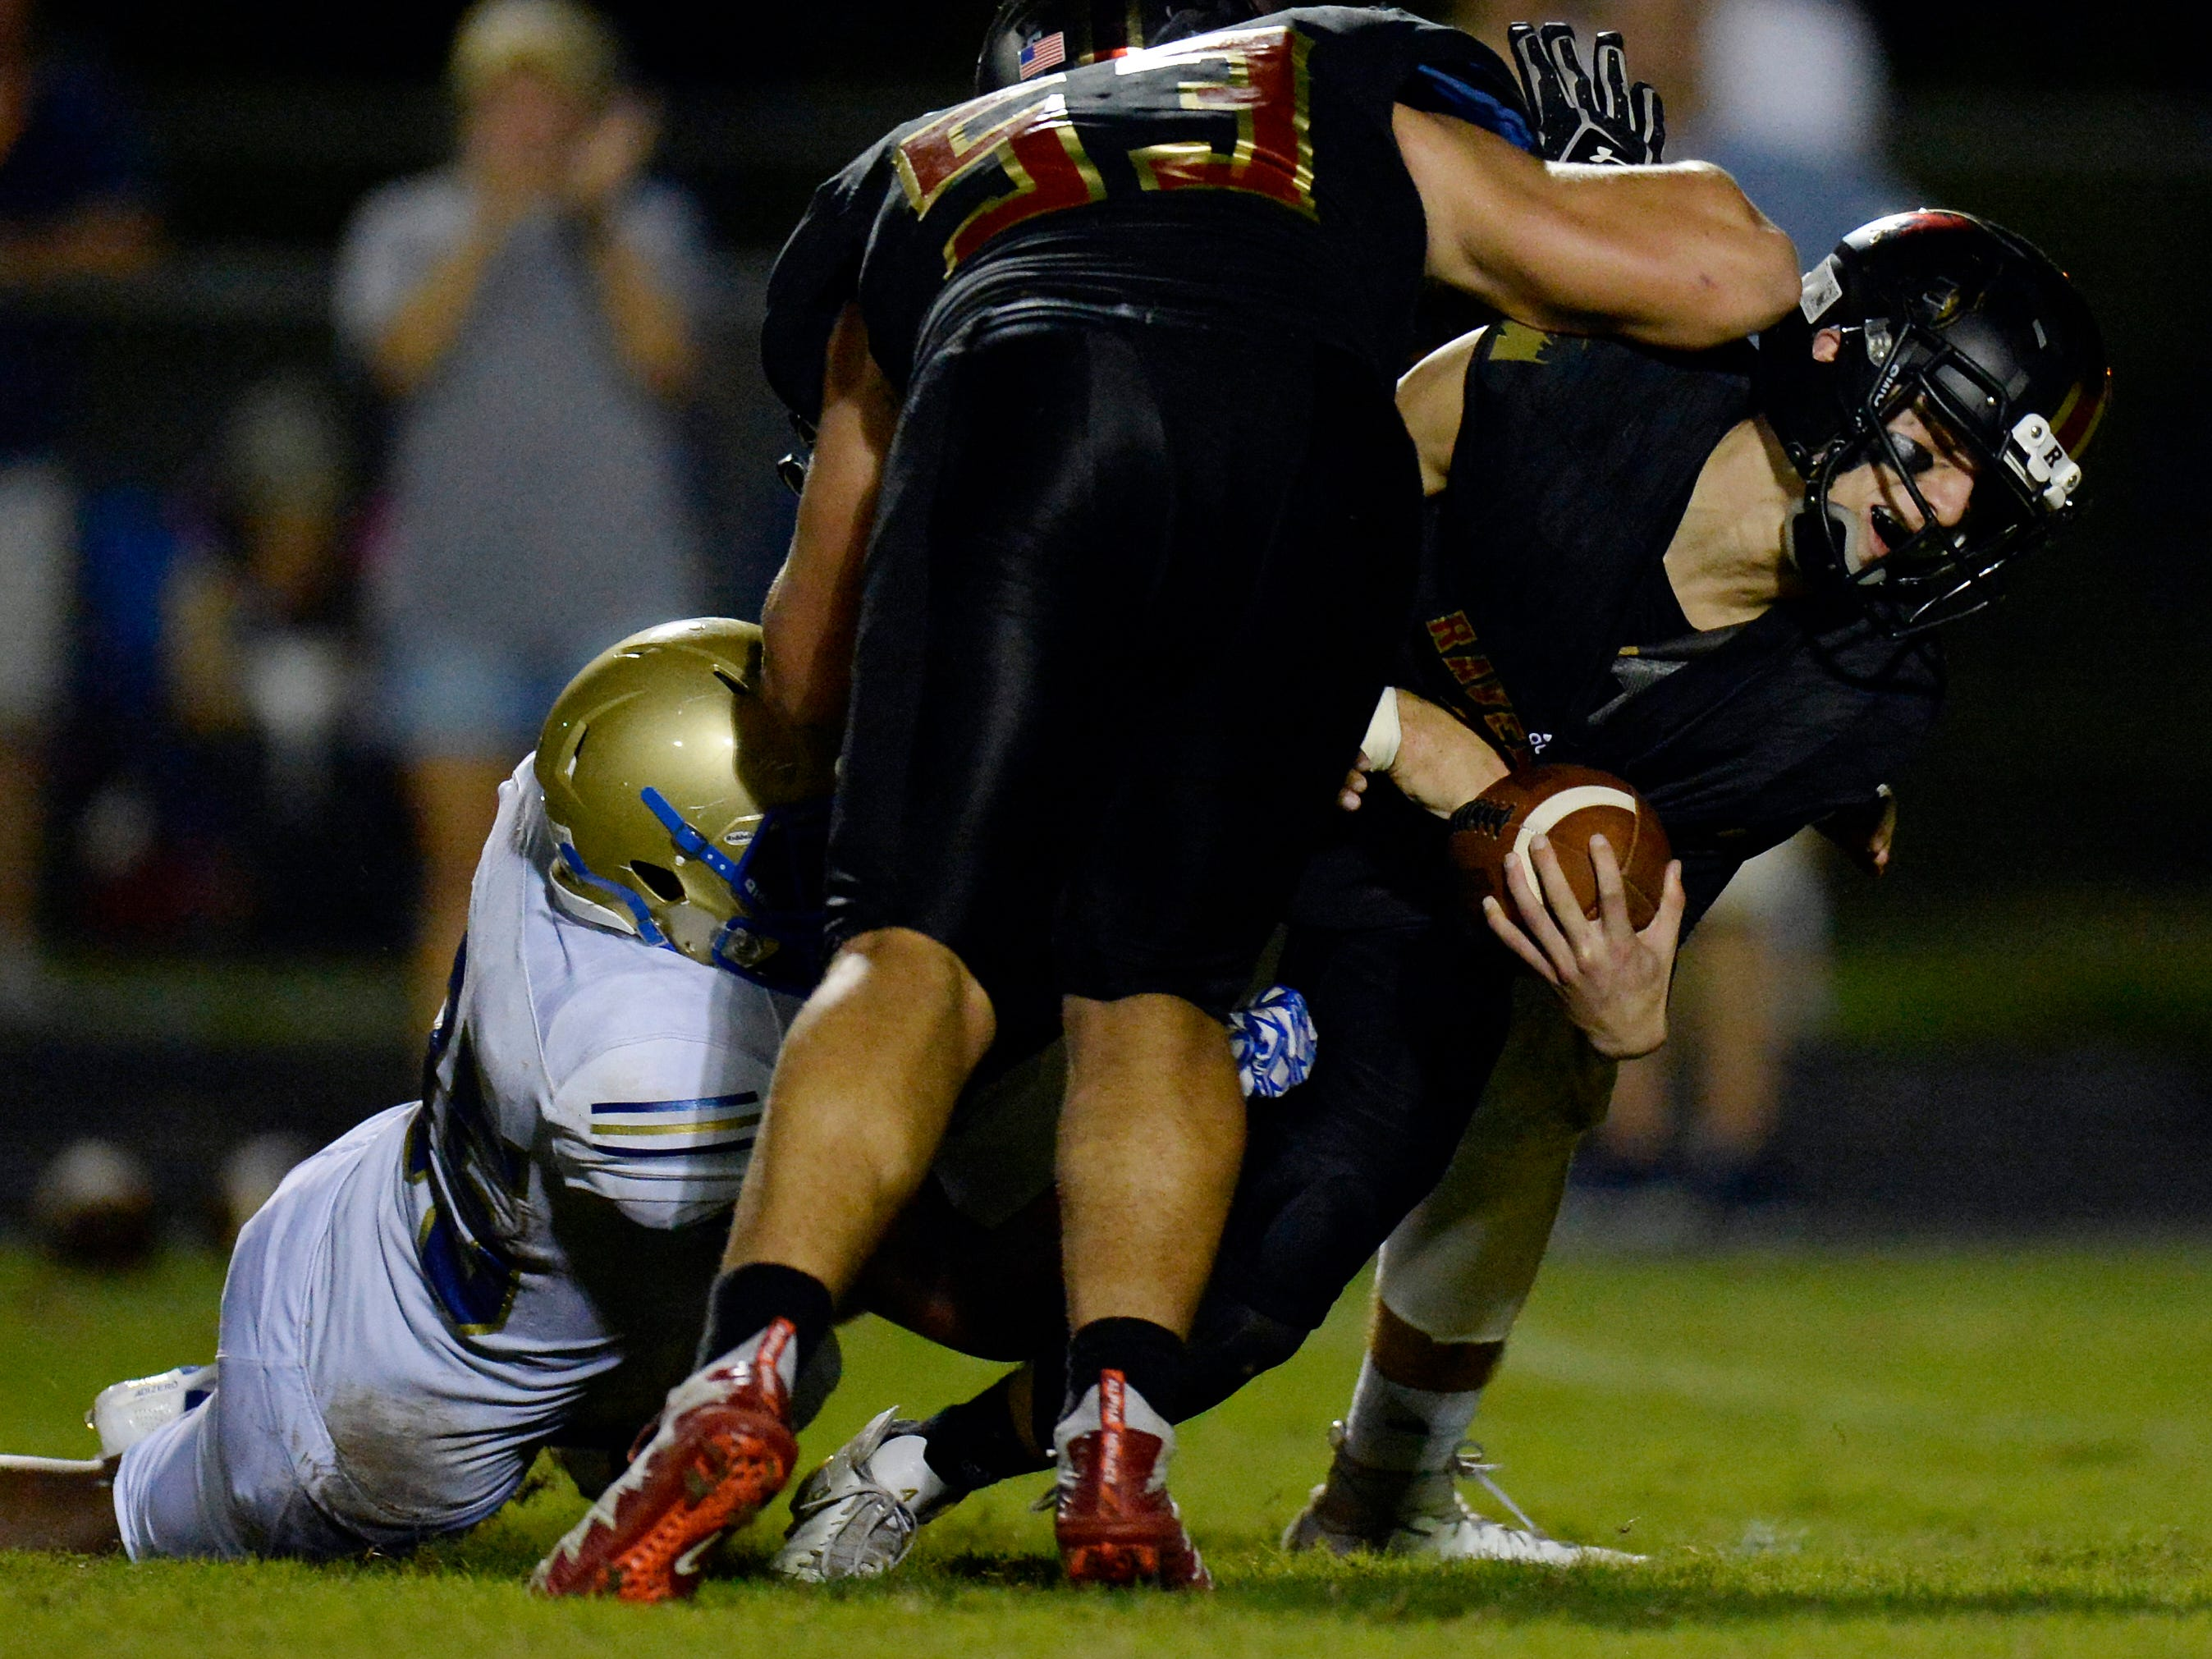 Brentwood linebacker Kaleb Williford, left, sacks Ravenwood quarterback Brian Garcia, right, during the second half of a high school football game Friday, September 14, 2018, in Brentwood, Tenn. Brentwood won 31-28.